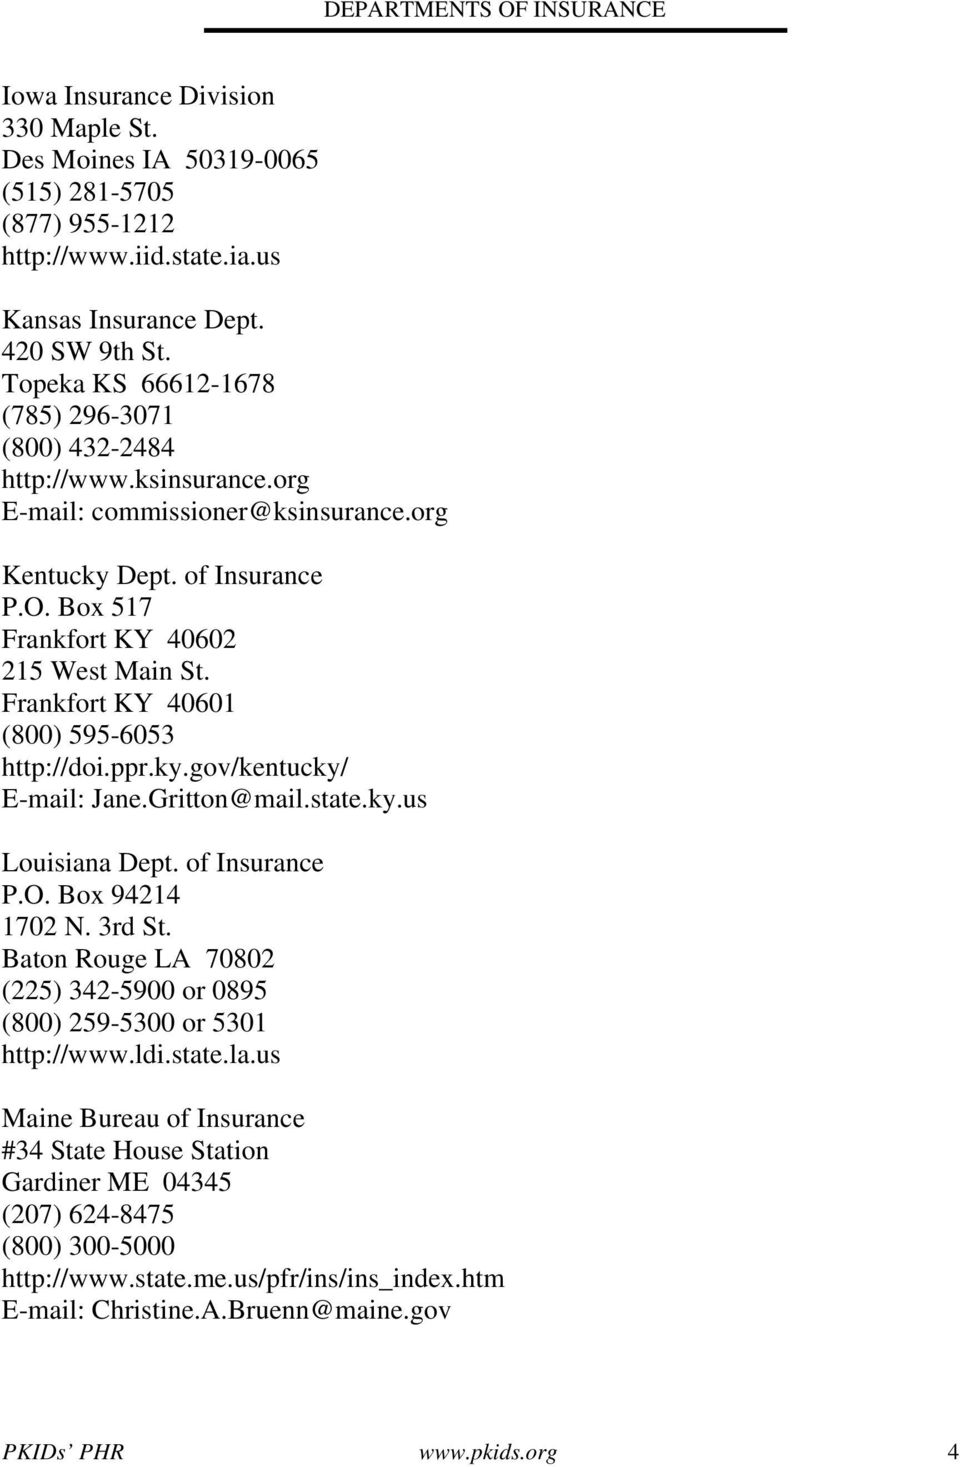 Frankfort KY 40601 (800) 595-6053 http://doi.ppr.ky.gov/kentucky/ E-mail: Jane.Gritton@mail.state.ky.us Louisiana Dept. of Insurance P.O. Box 94214 1702 N. 3rd St.